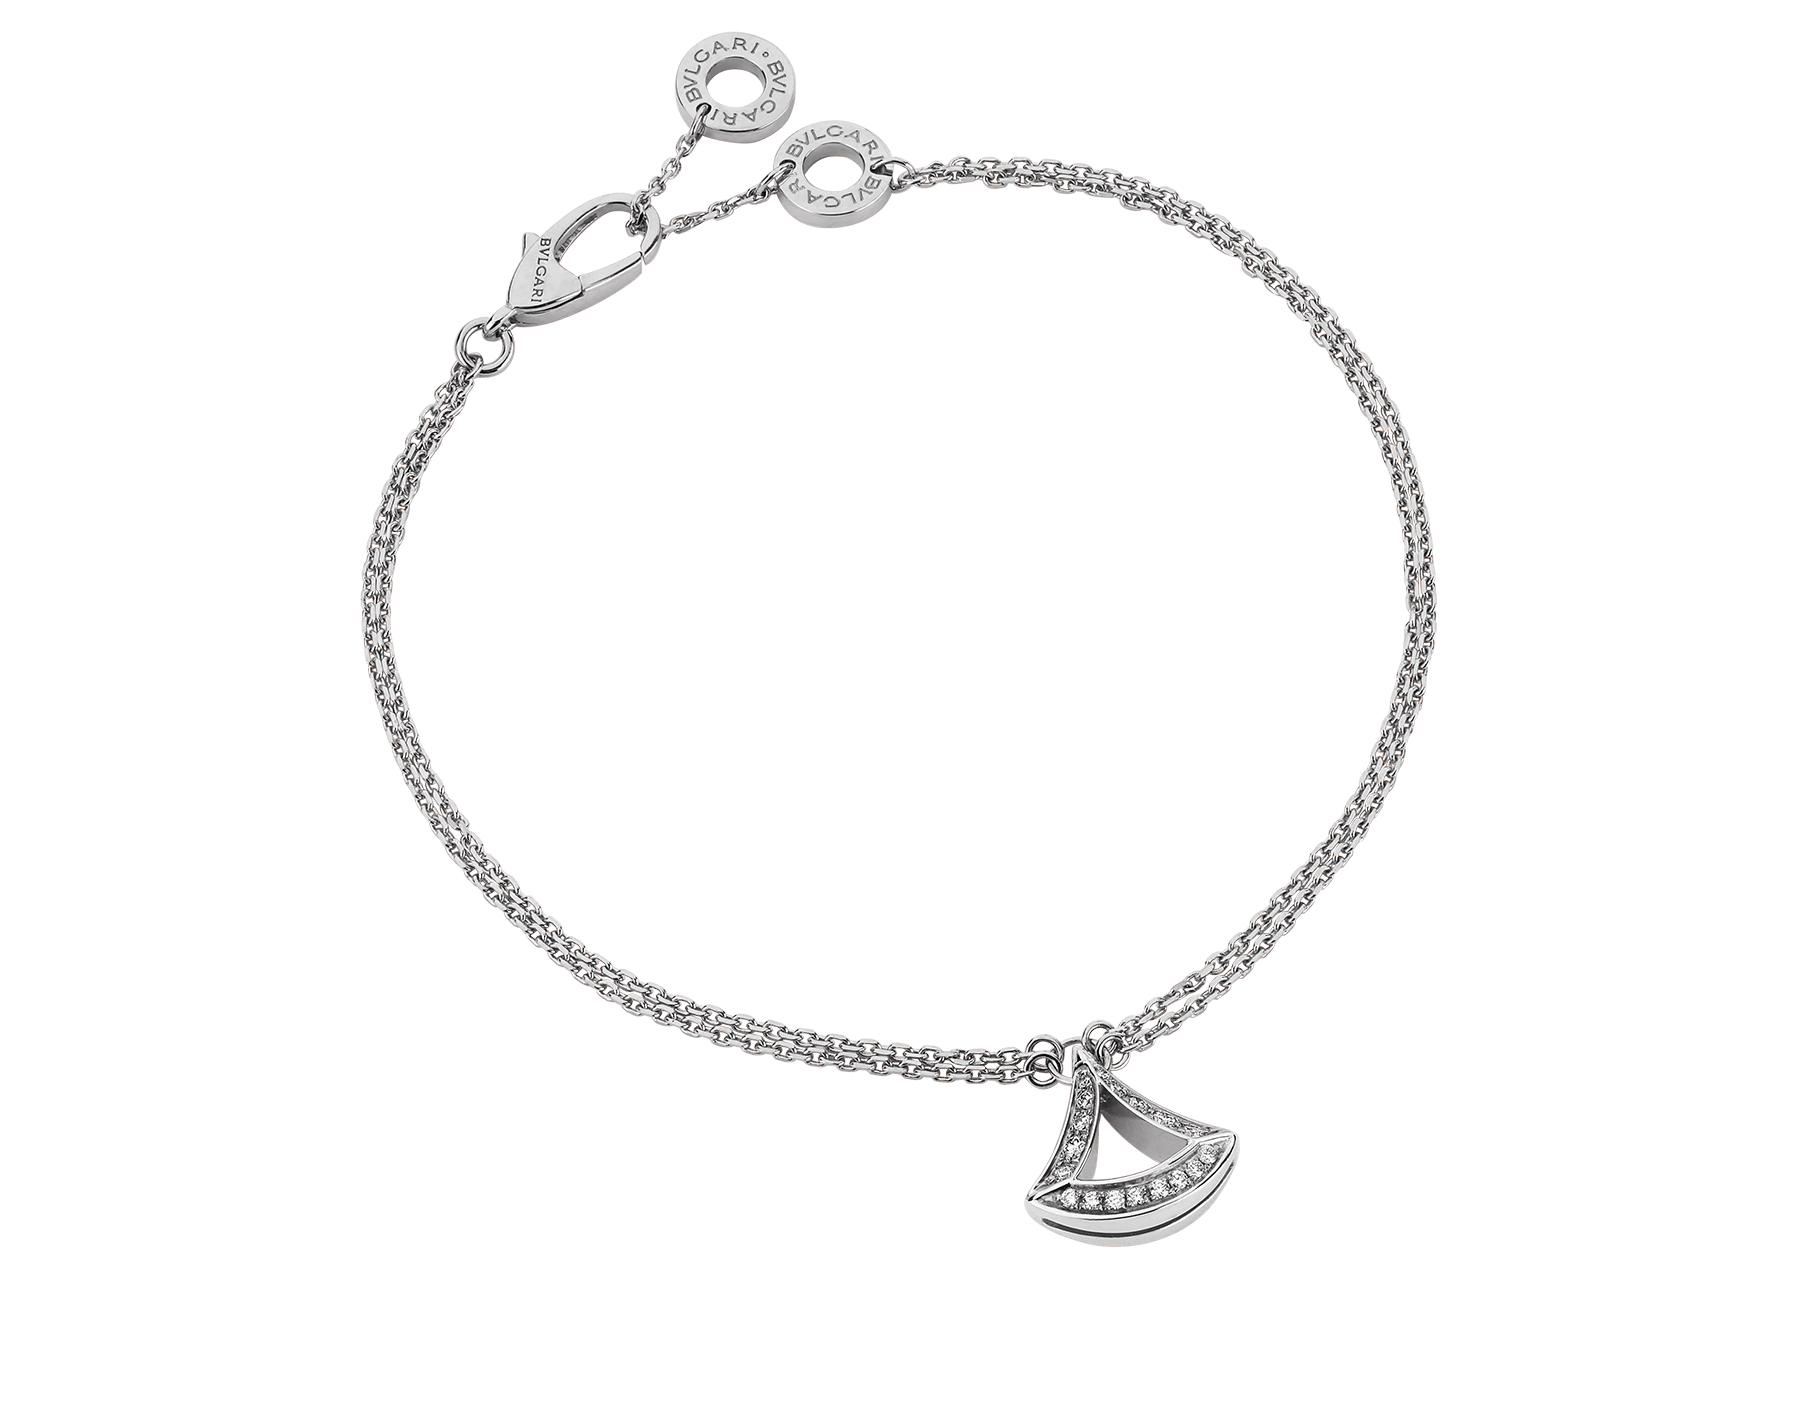 DIVAS' DREAM openwork bracelet in 18 kt white gold with 18 kt white gold pendant set with pavé diamonds (0.20 ct). BR858077 image 1